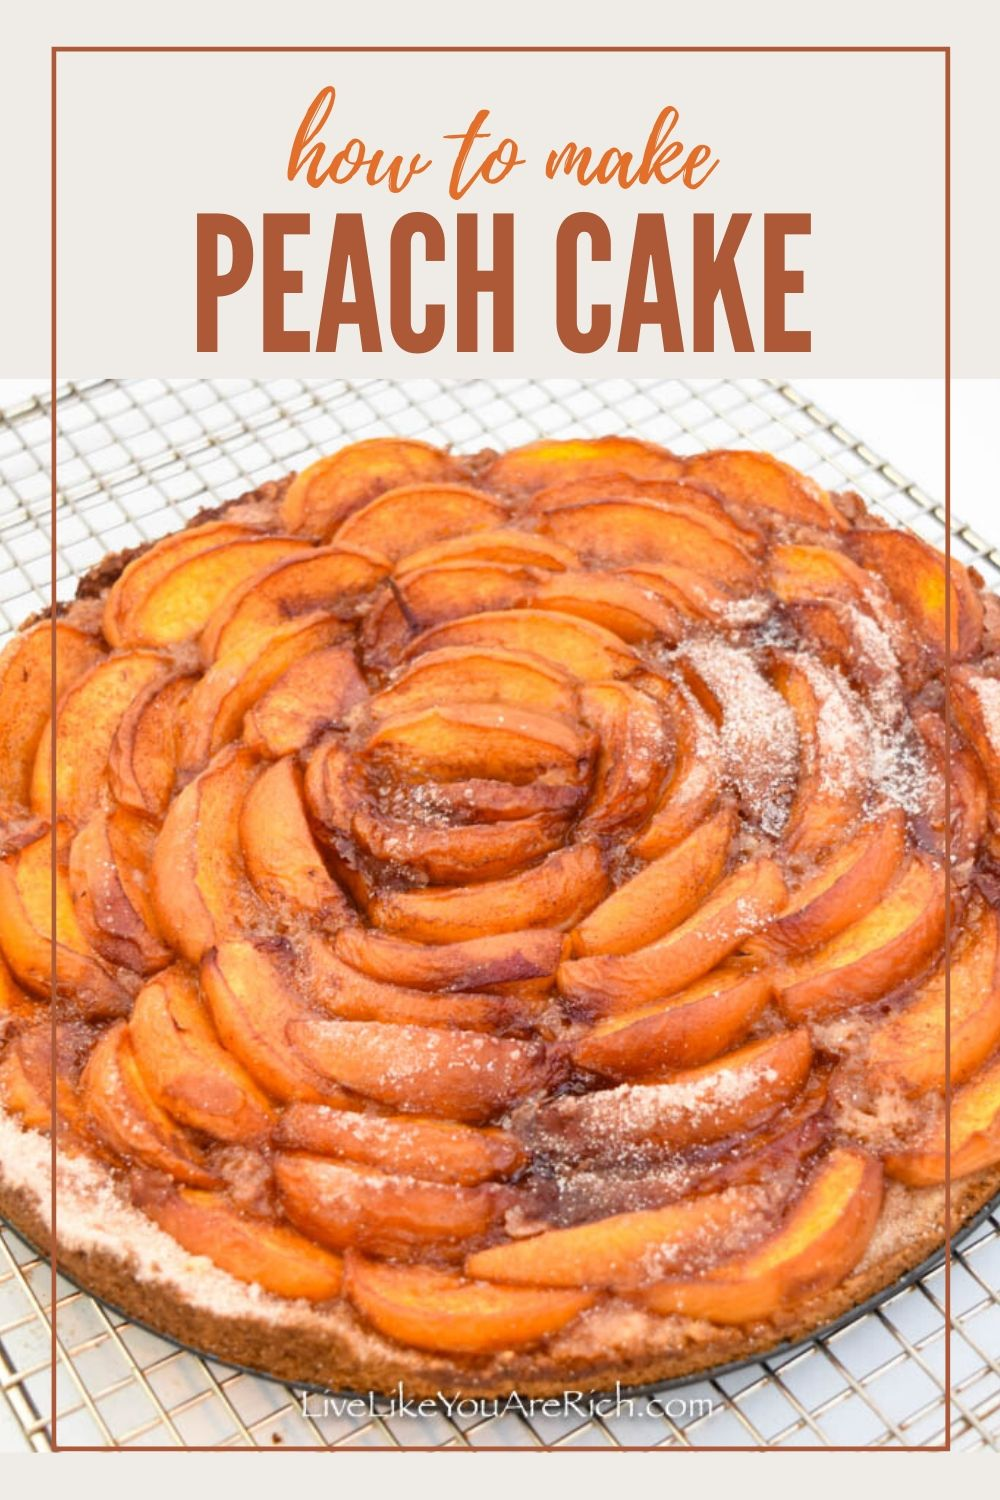 This Homemade German Peach Cake recipe is a combination of a deliciously moist lemon tart topped with sweet peaches baked to perfection. It is easy to make. My family and friends really love it.